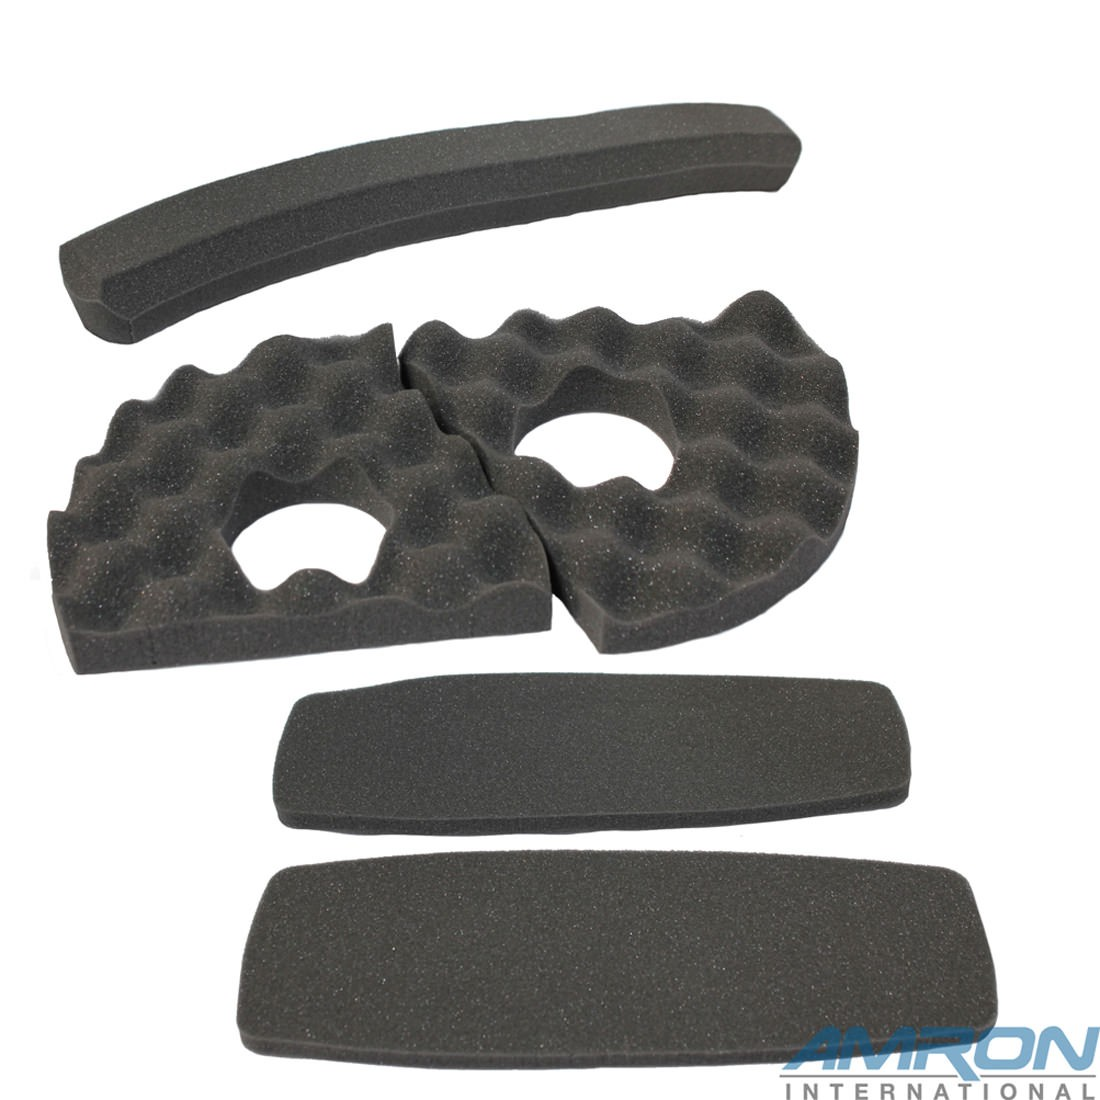 Kirby Morgan Replacement Head Cushion Foam Set 510-523